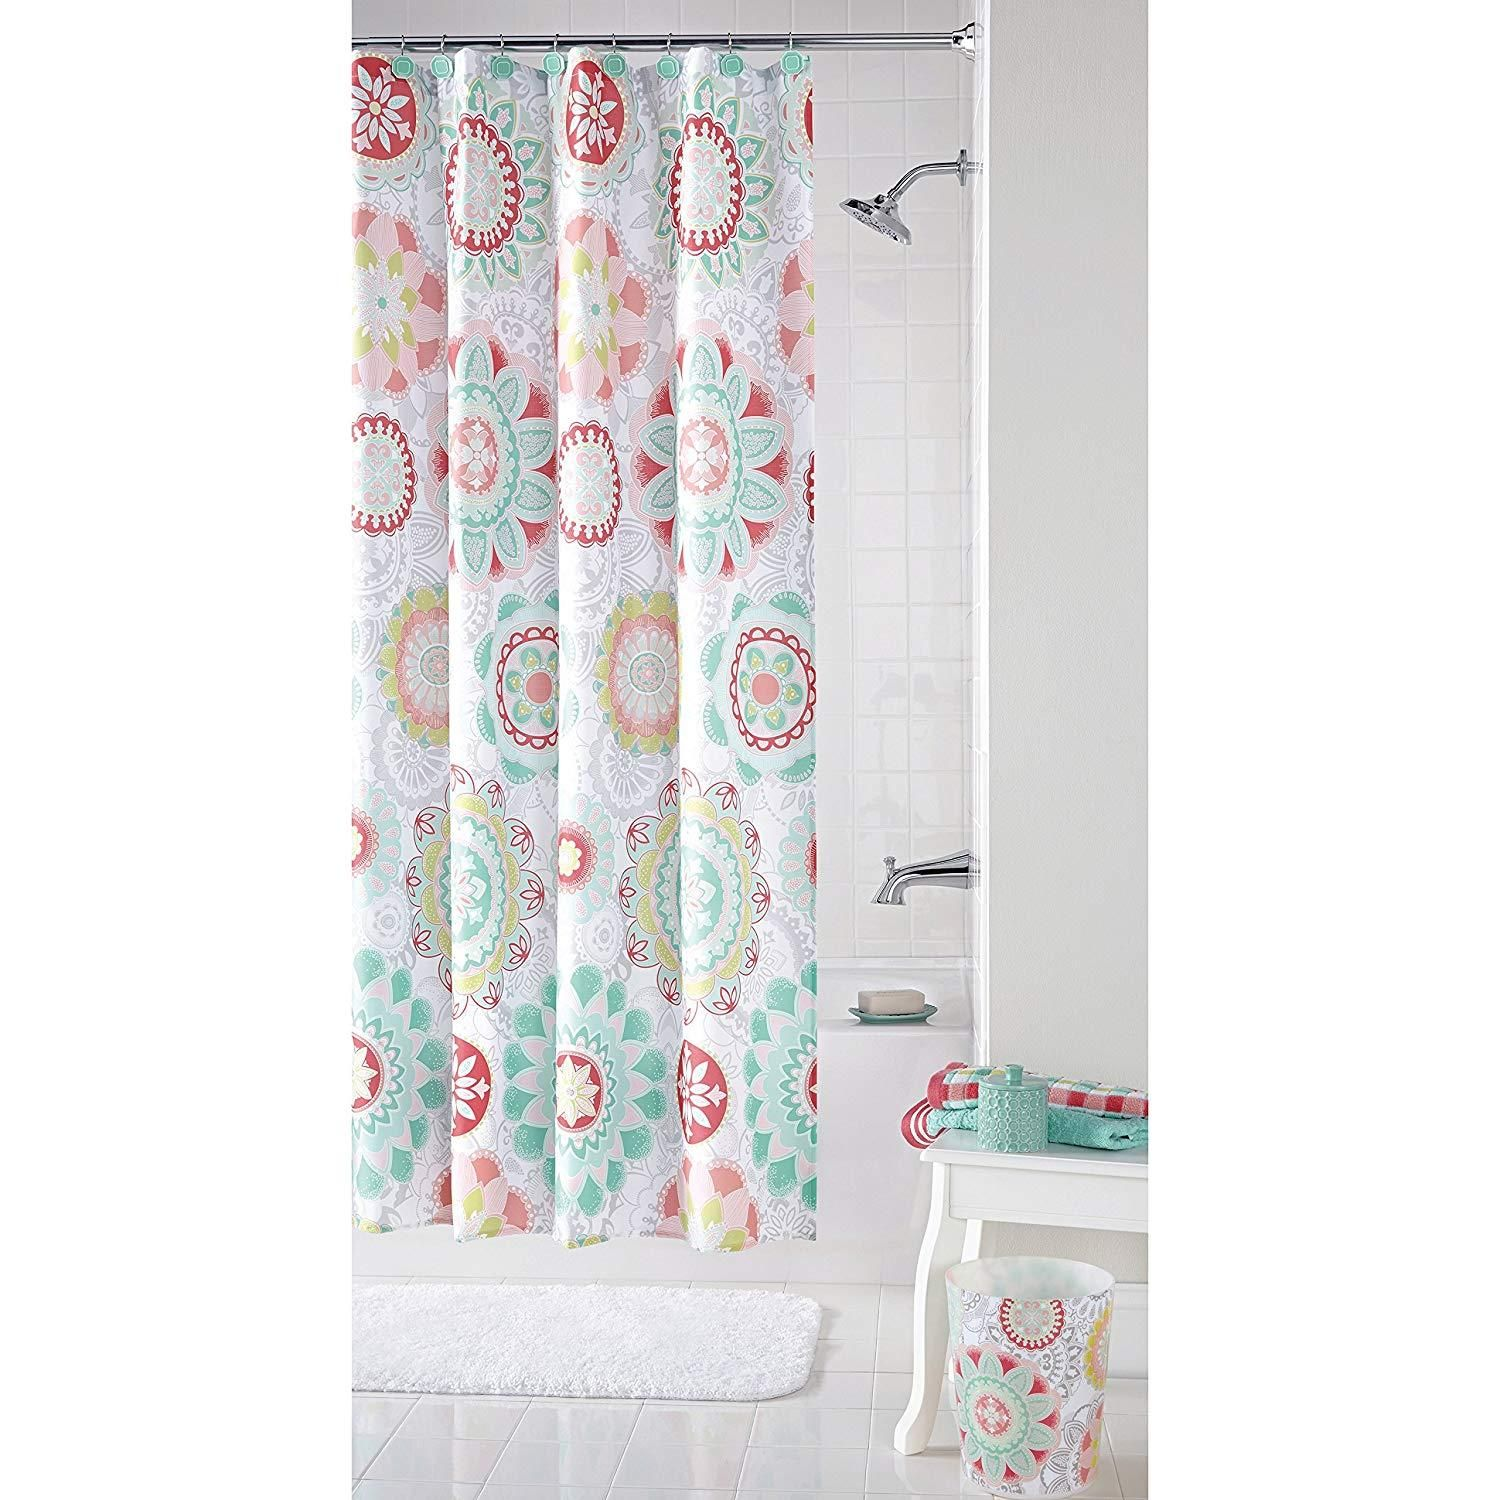 Mint Red Groovy Medallion Shower Curtain 70x72 Inch Green Floral